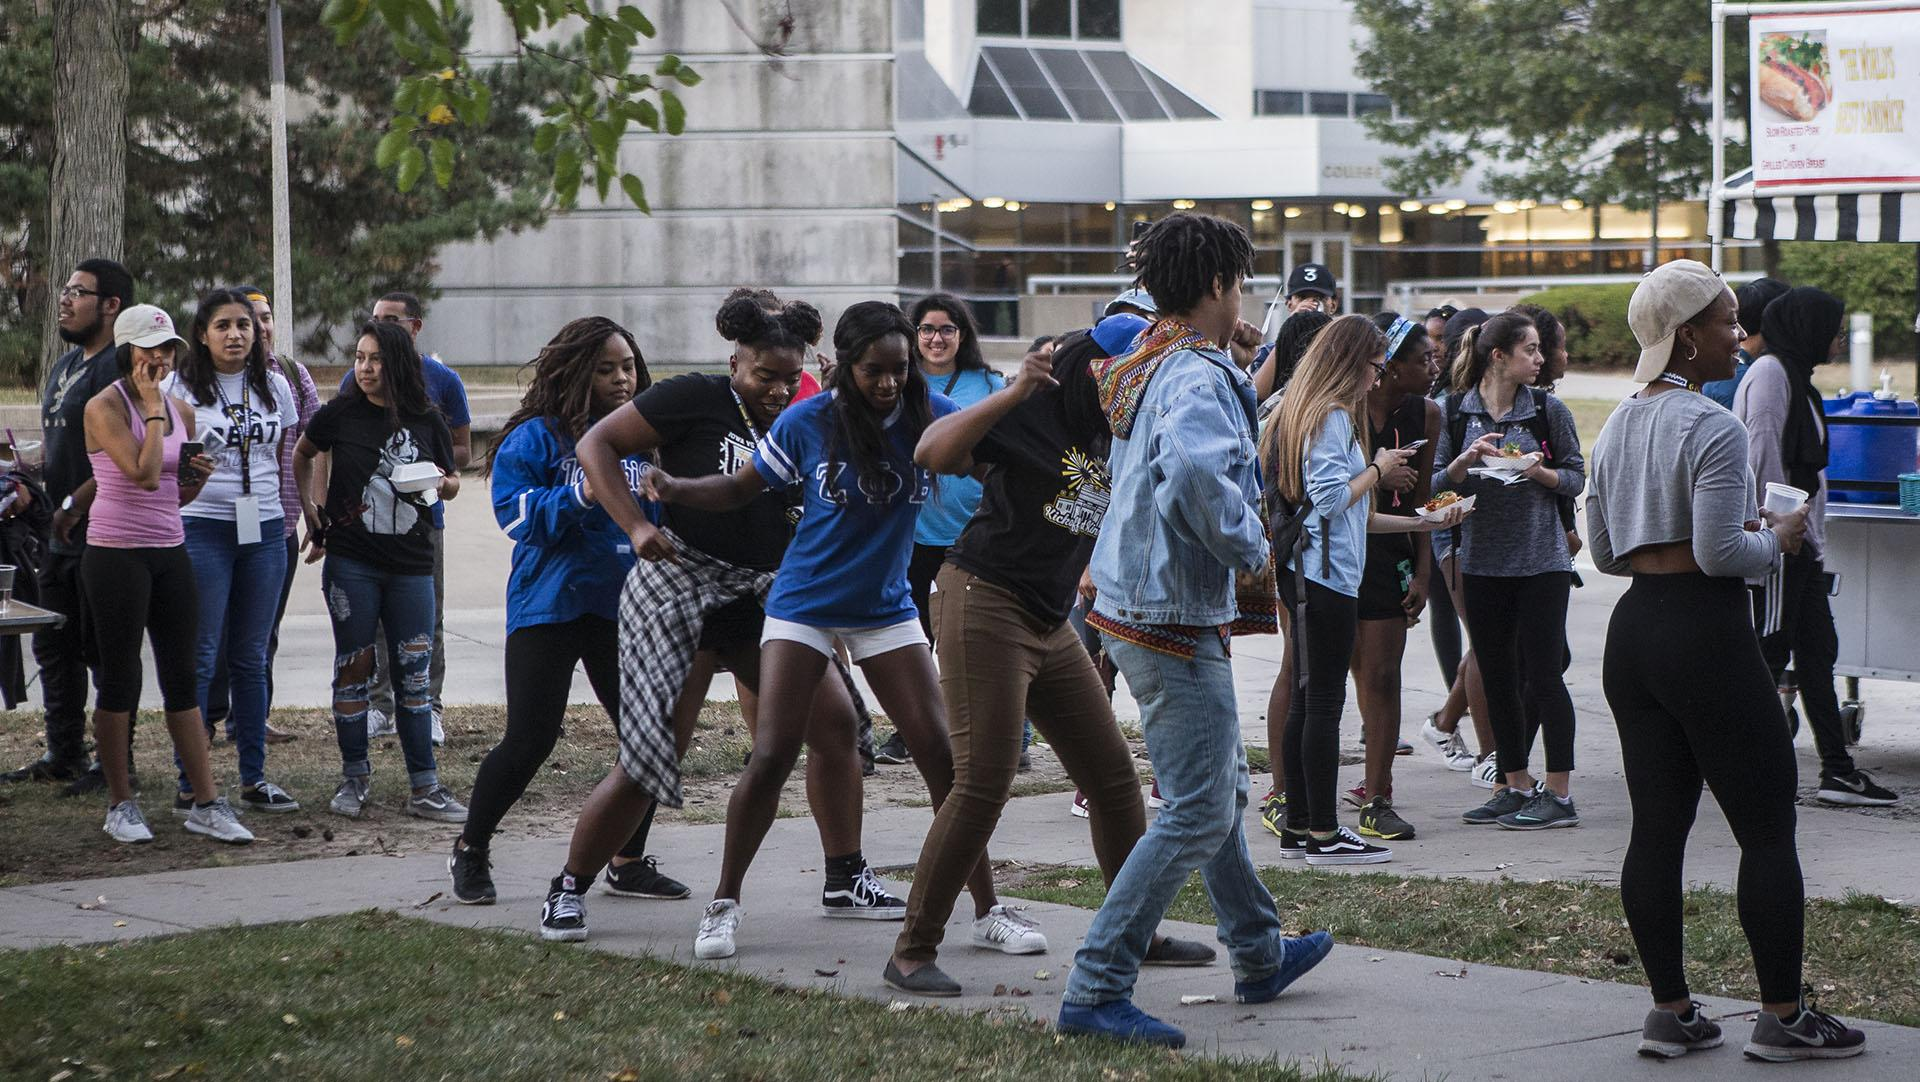 Members of the National Pan-Hellenic Council perform a dance at the African-American Cultural House on Monday, Oct. 2, 2017. Members of the community could attend the event for free as a part of the University's Homecoming Week. (Ben Smith/The Daily Iowan)